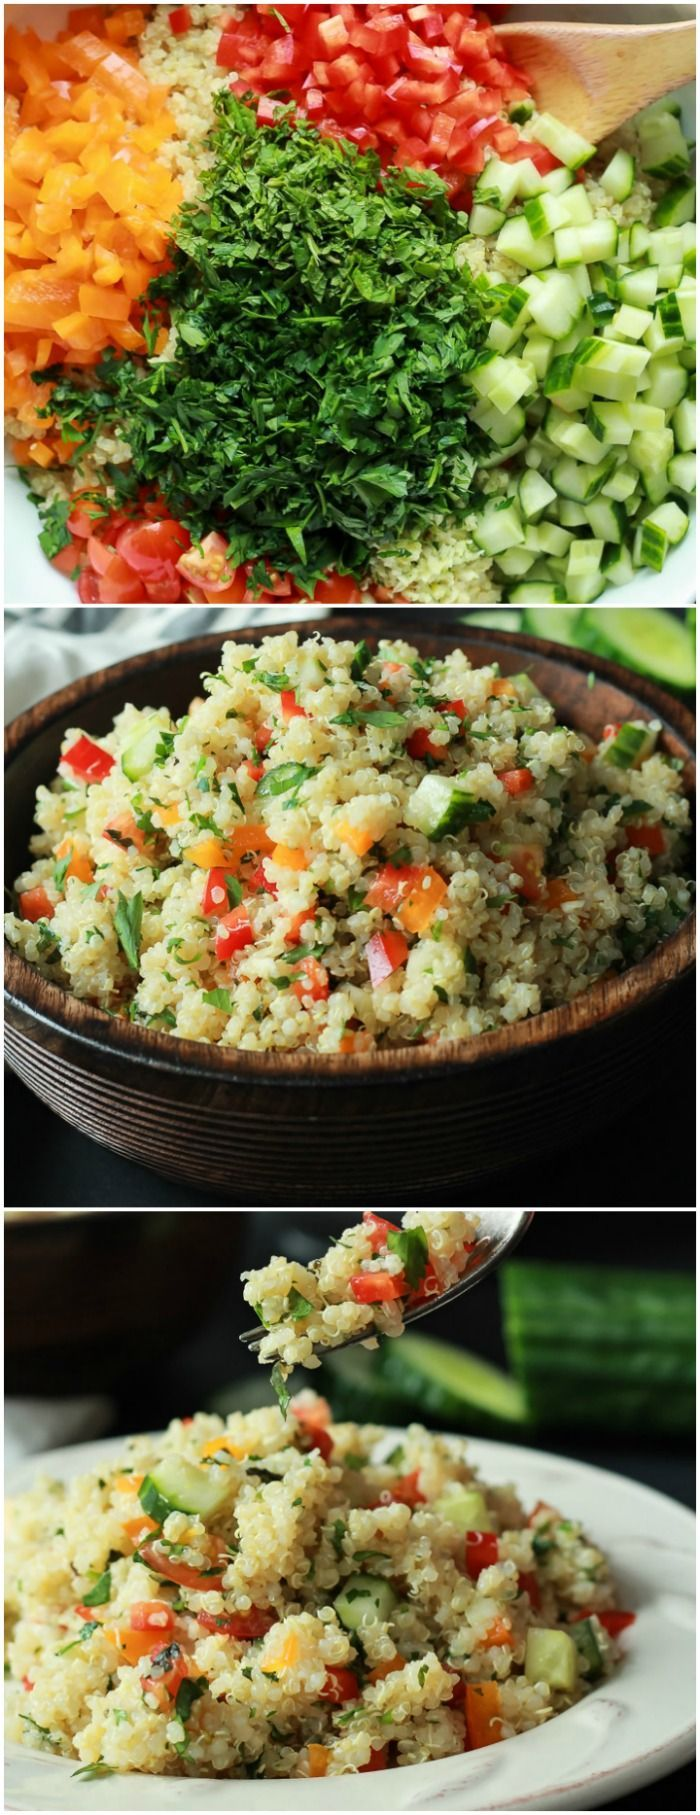 Quinoa Tabbouleh Salad an easy salad recipe that's done in 20 minutes; filled with fresh mint and parsley, fresh vegetables, and lemon juice. Light and low calorie, perfect for the summer! | joyfulhealthyeats.com #recipes #glutenfree: